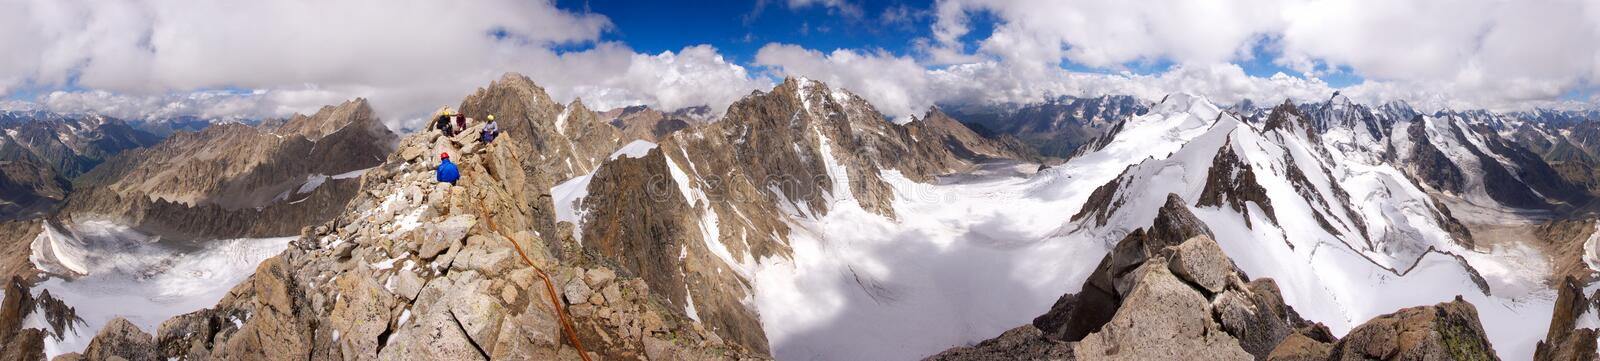 Panorama 360 of Caucasian mountains with climbers royalty free stock photography